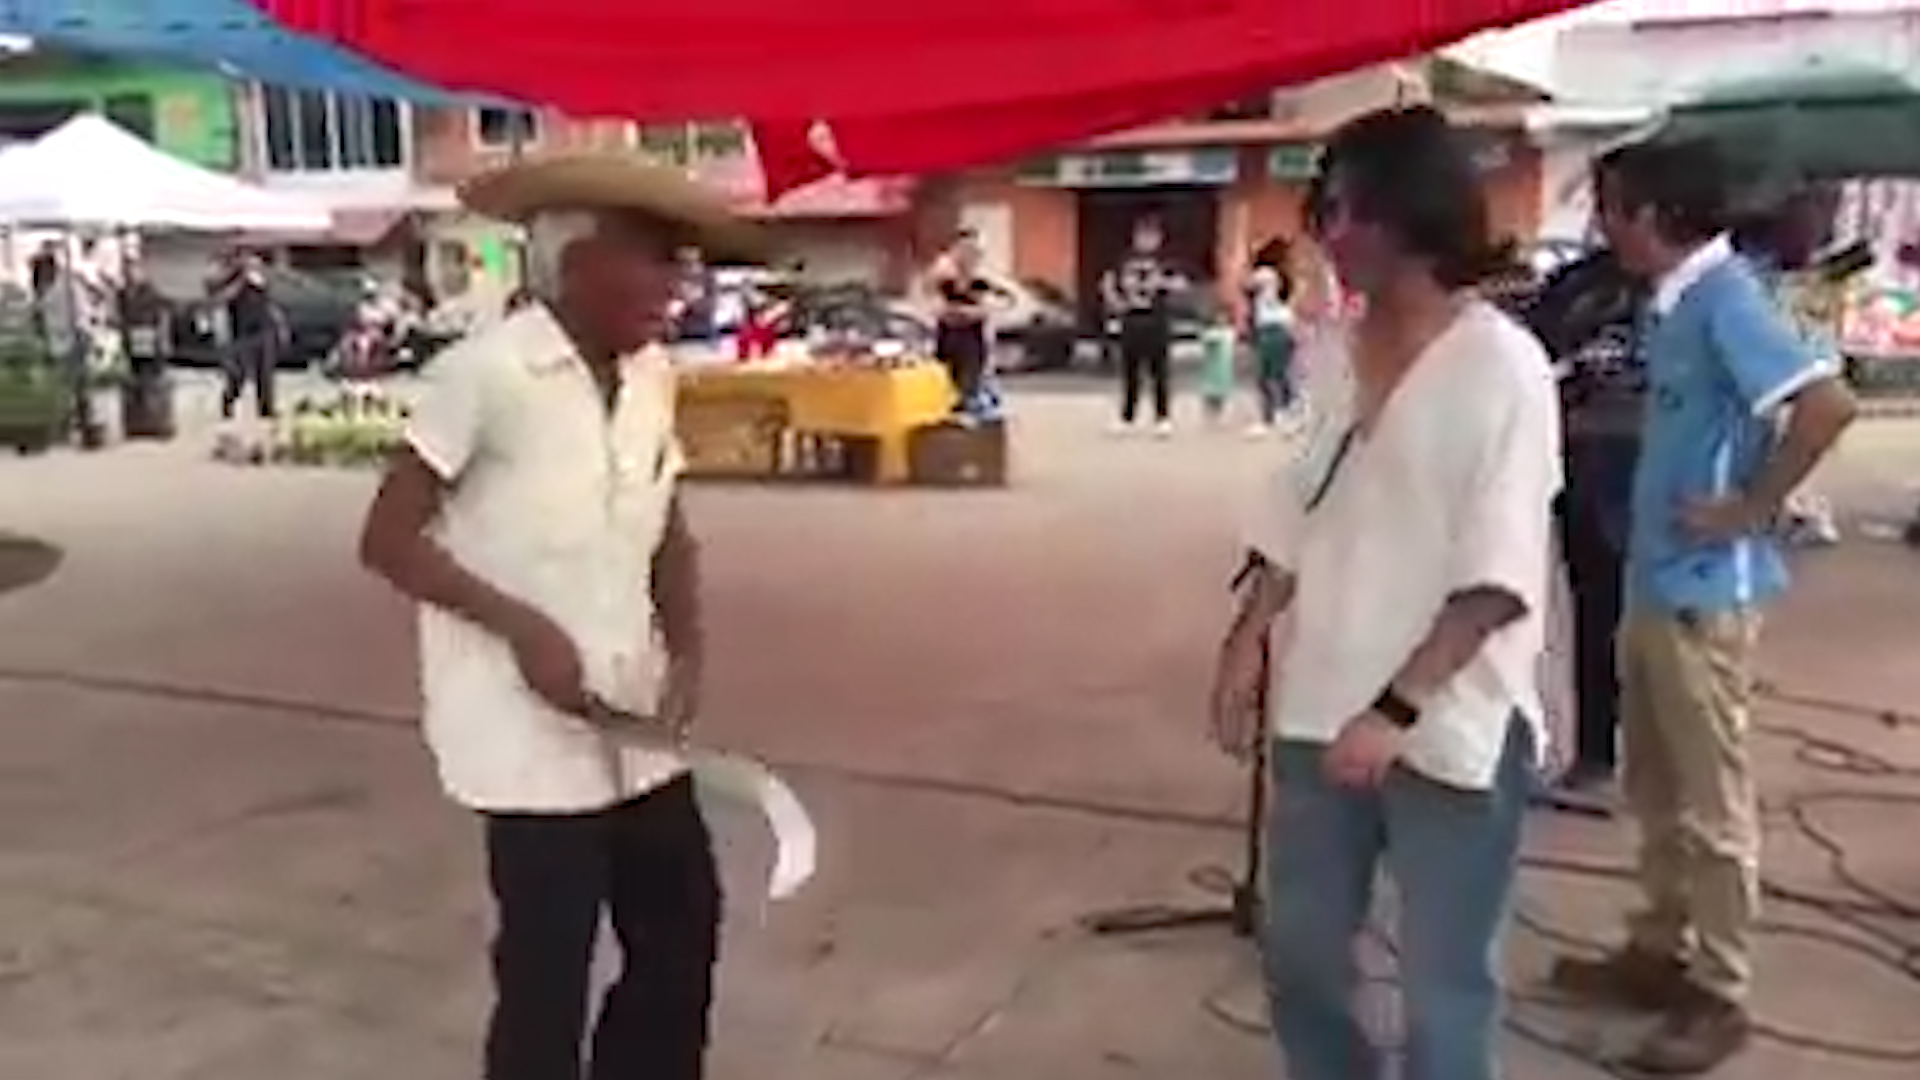 Anciano amenaza con machete a jovenes rockeros en Mexico